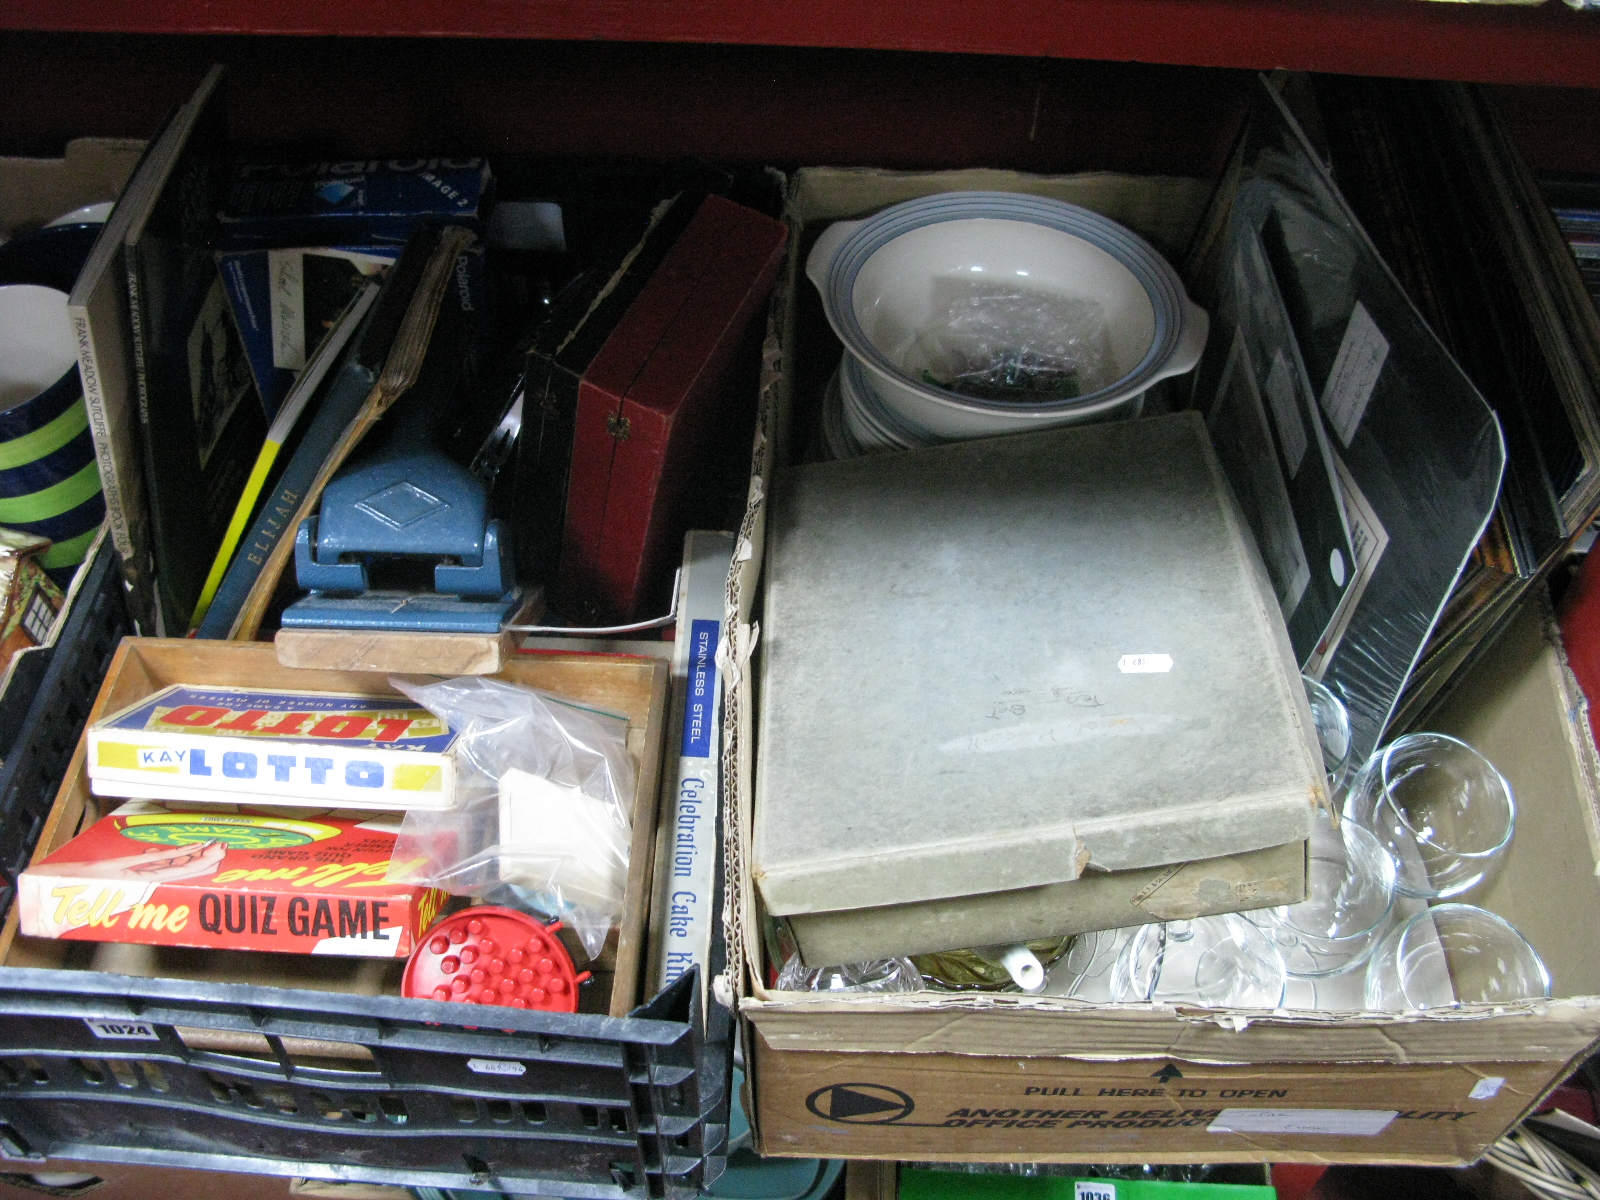 Lot 1024 - Records, Whitby reprints, games, Polaroid camera, cutlery, dolls tea ware etc:- Two Boxes